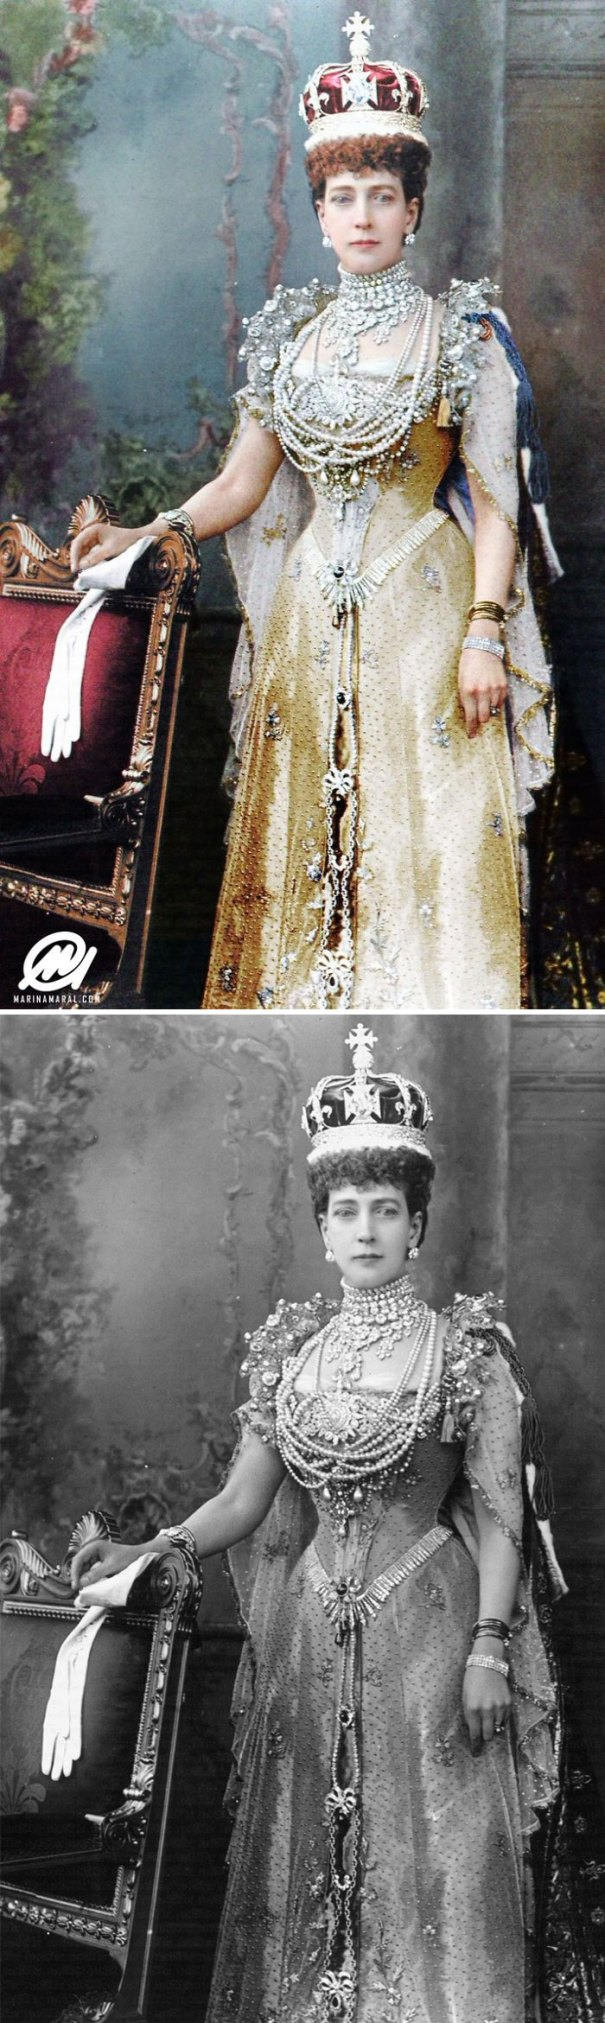 5b6d3b6f21821-colorized-historic-photos-marina-amaral-119-5b6c3e9d678ba__700 This Artist Colorizes Old Black & White Photos, And They Will Change The Way People Imagine History Photography Random